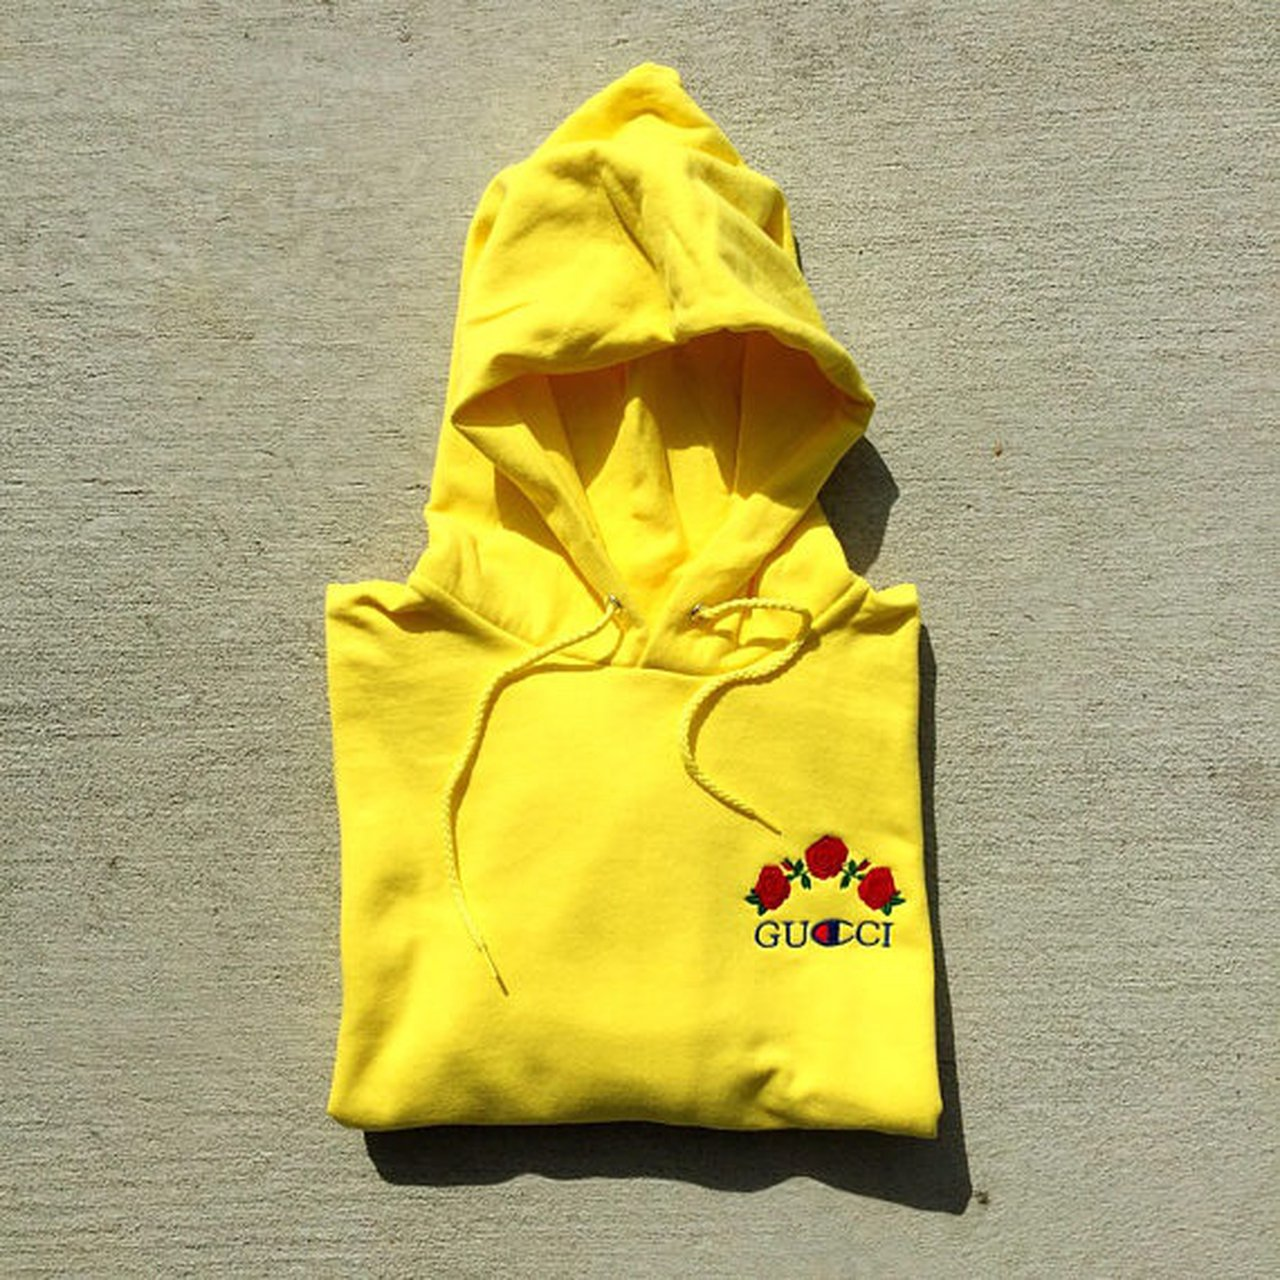 Ava Nirui Gucci x Champion Design Hoodie  roses  yellow - Depop fcccc28be